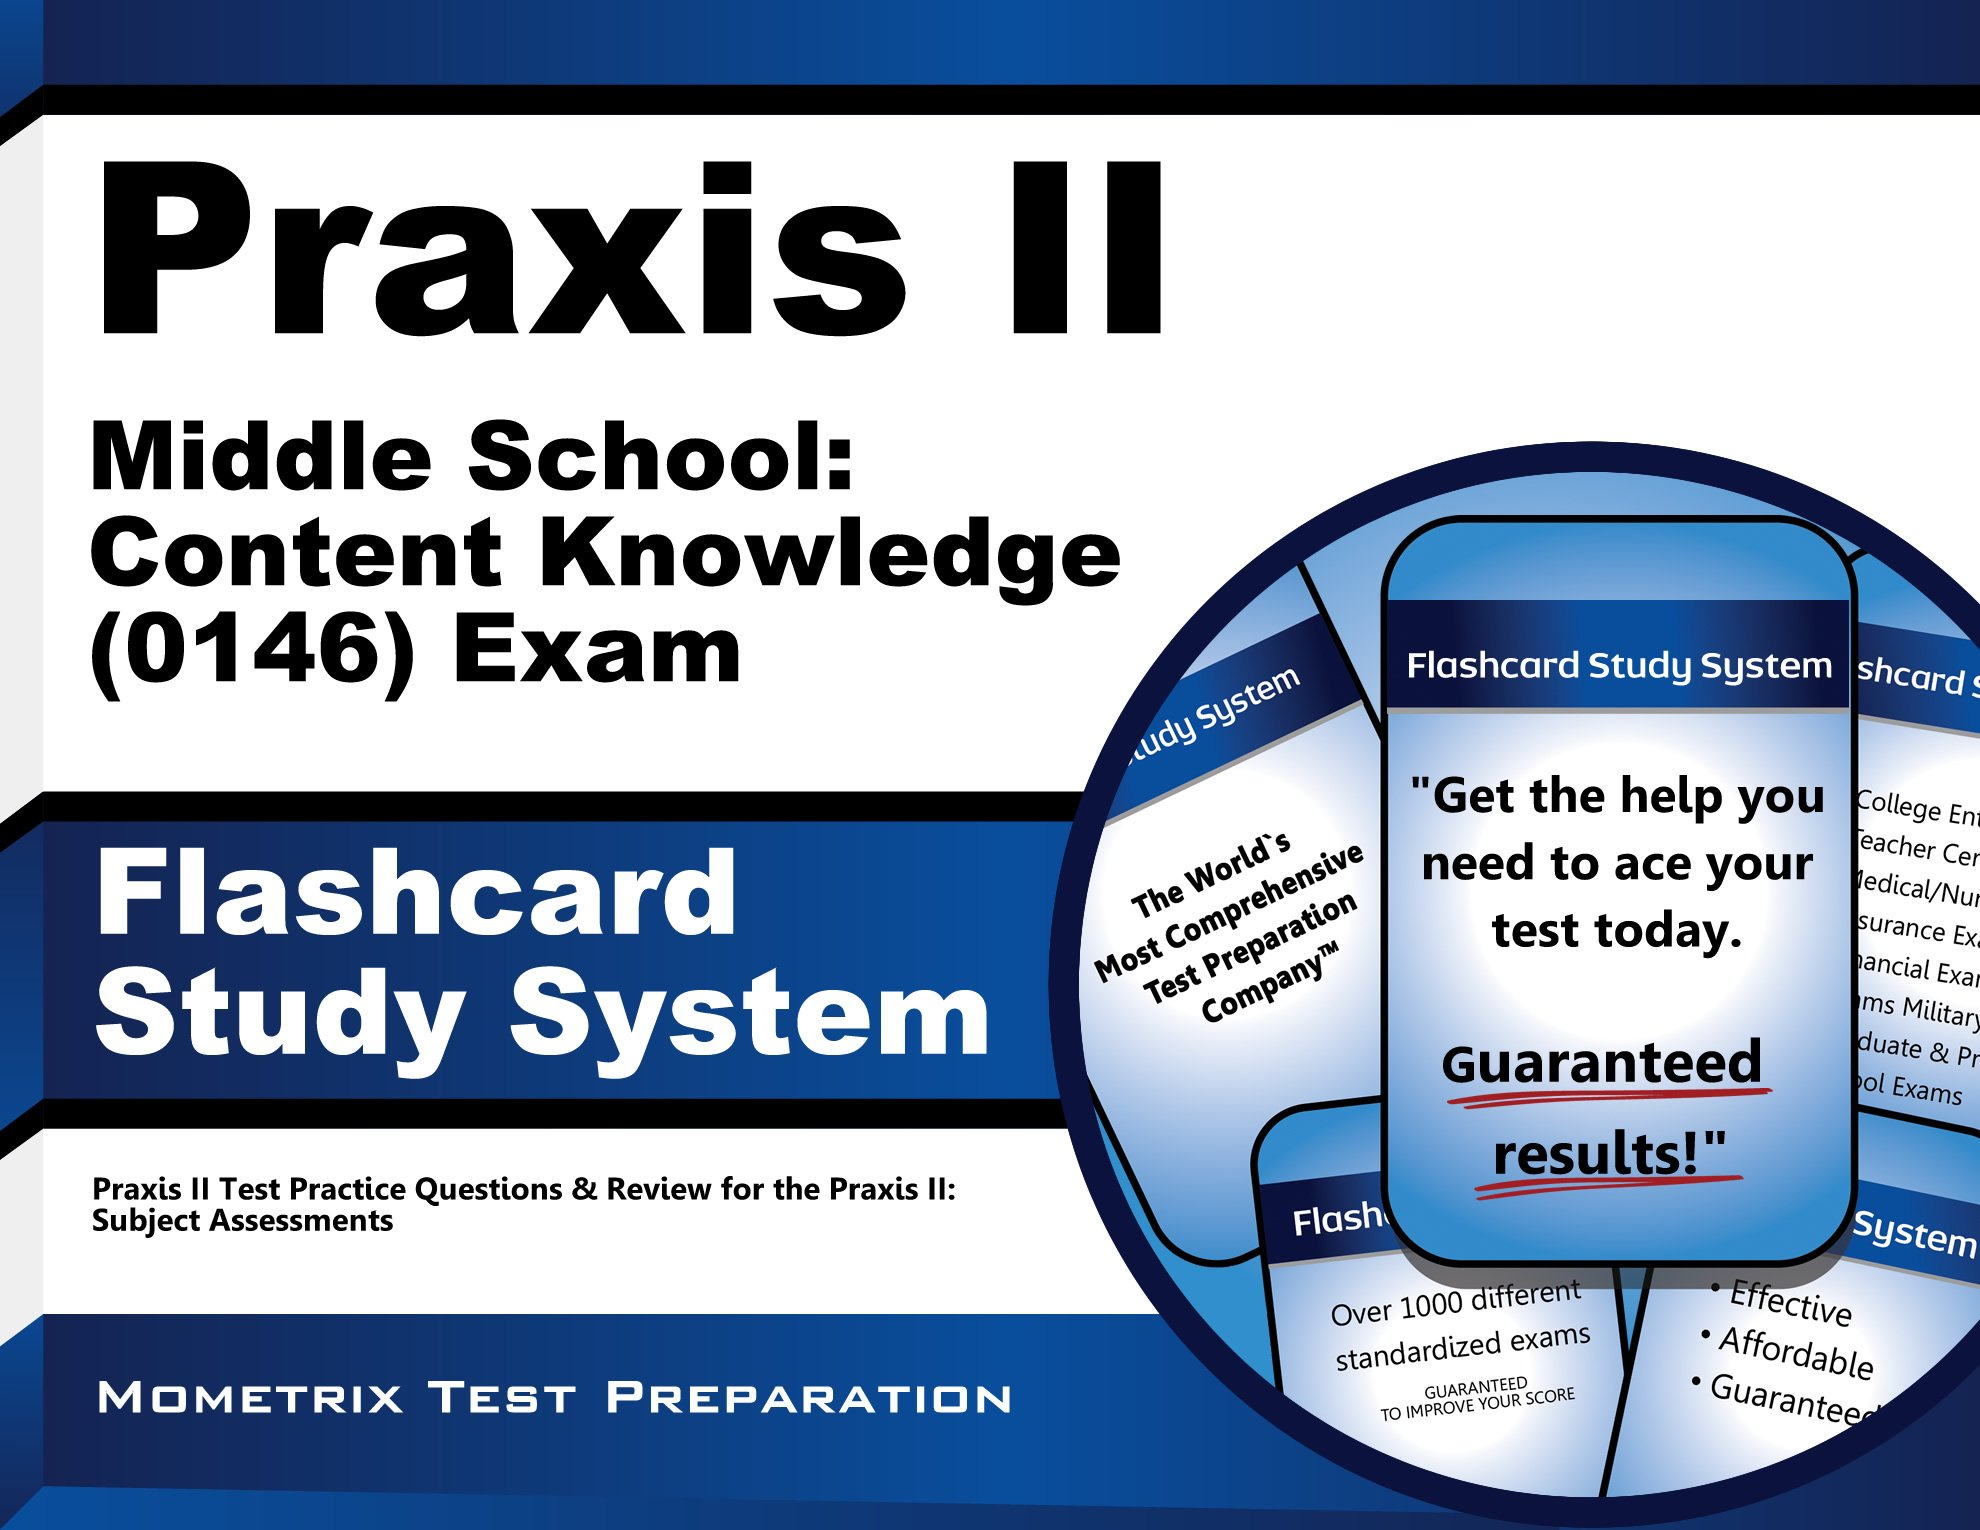 Download Praxis II Middle School: Content Knowledge (0146) Exam Flashcard Study System: Praxis II Test Practice Questions & Review for the Praxis II: Subject Assessments PDF